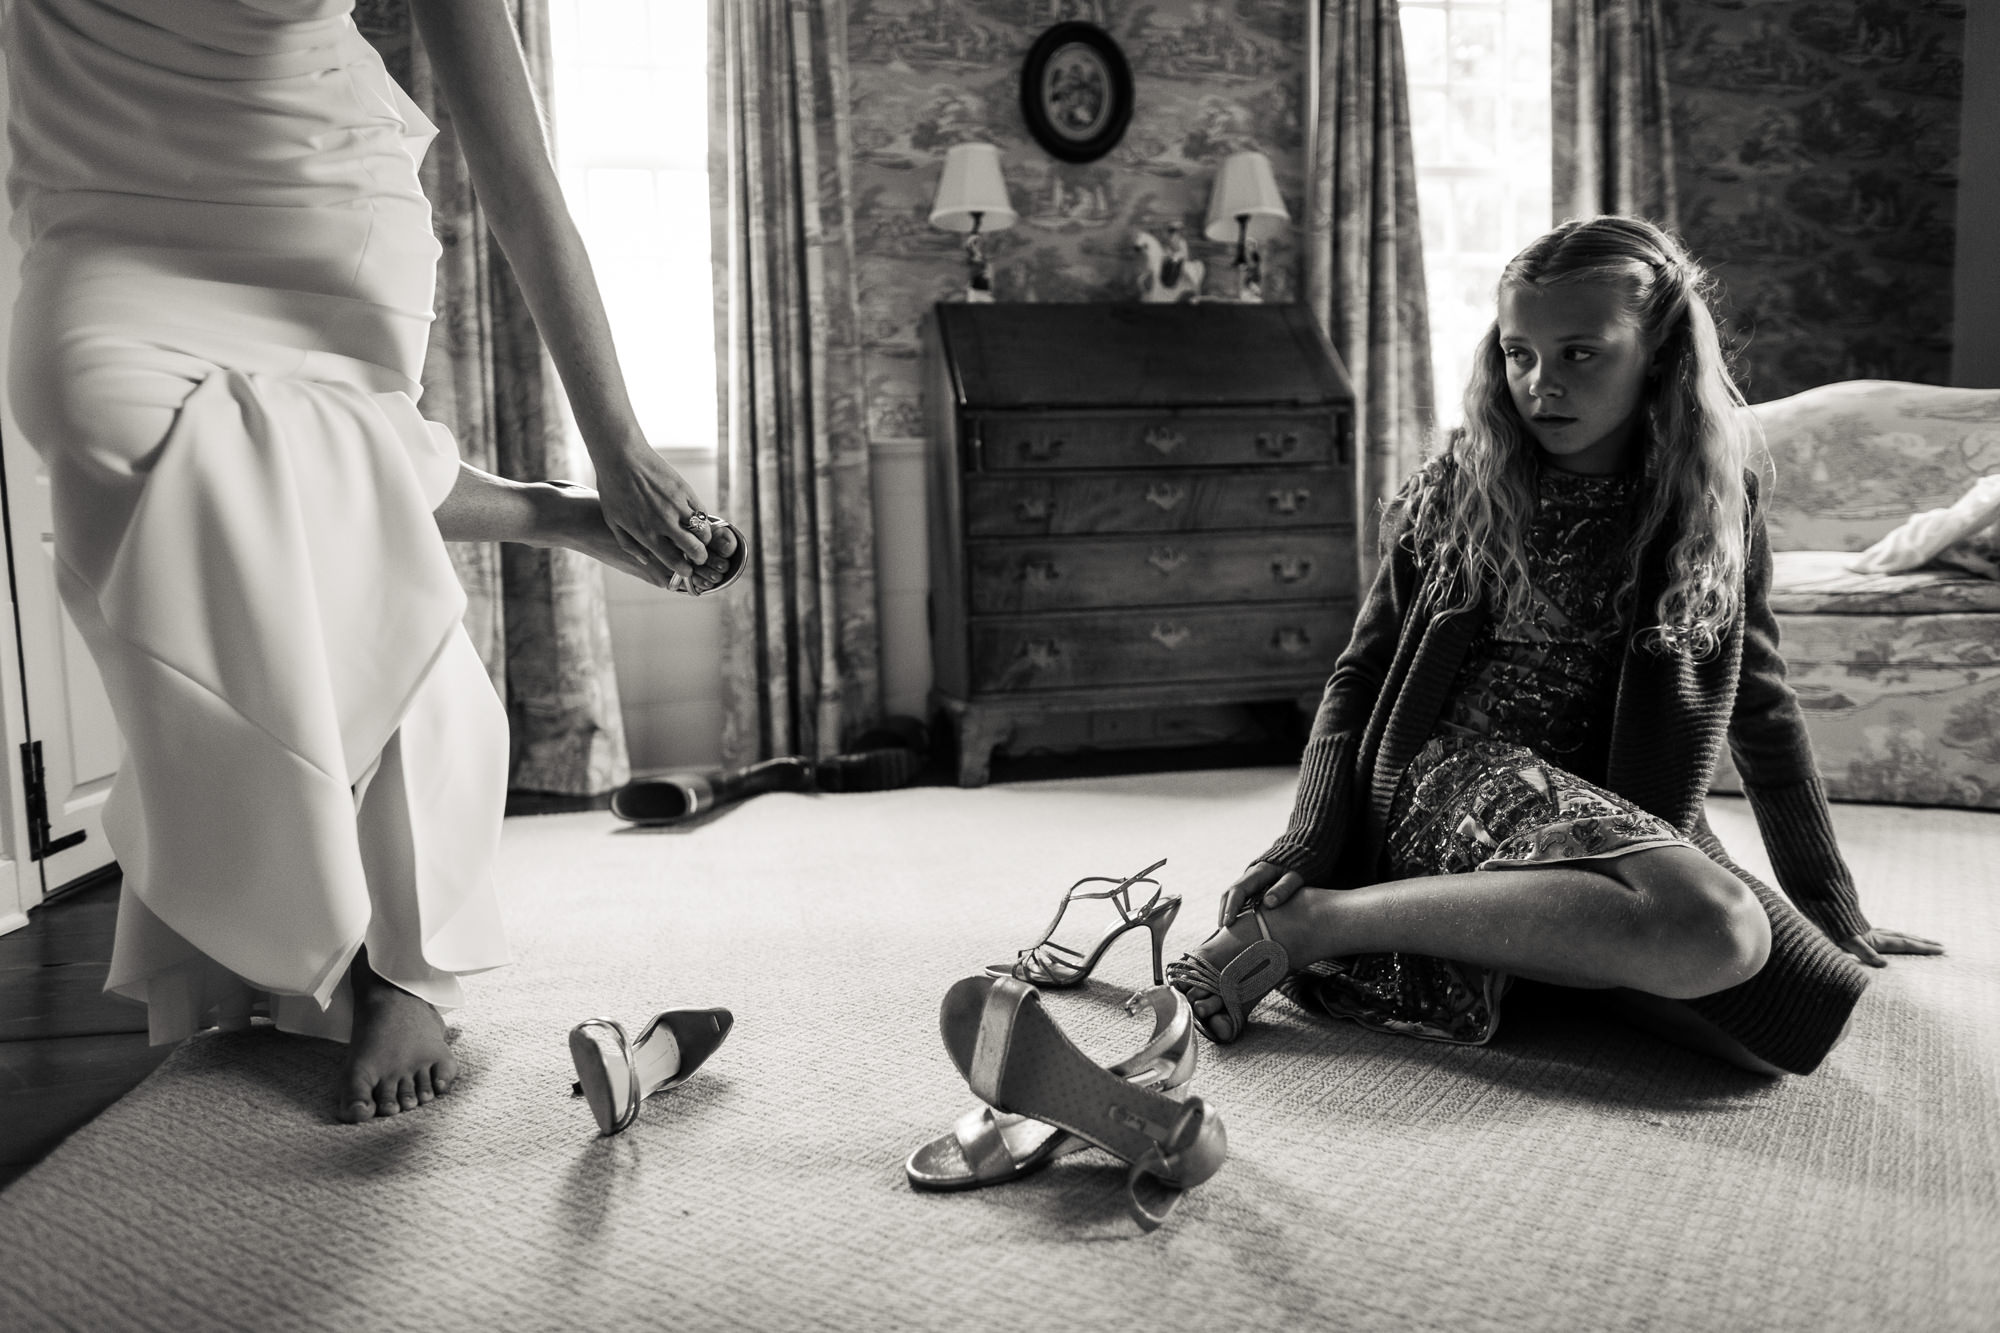 Young girl watches bride put her shoes on - photo by Jag Studios